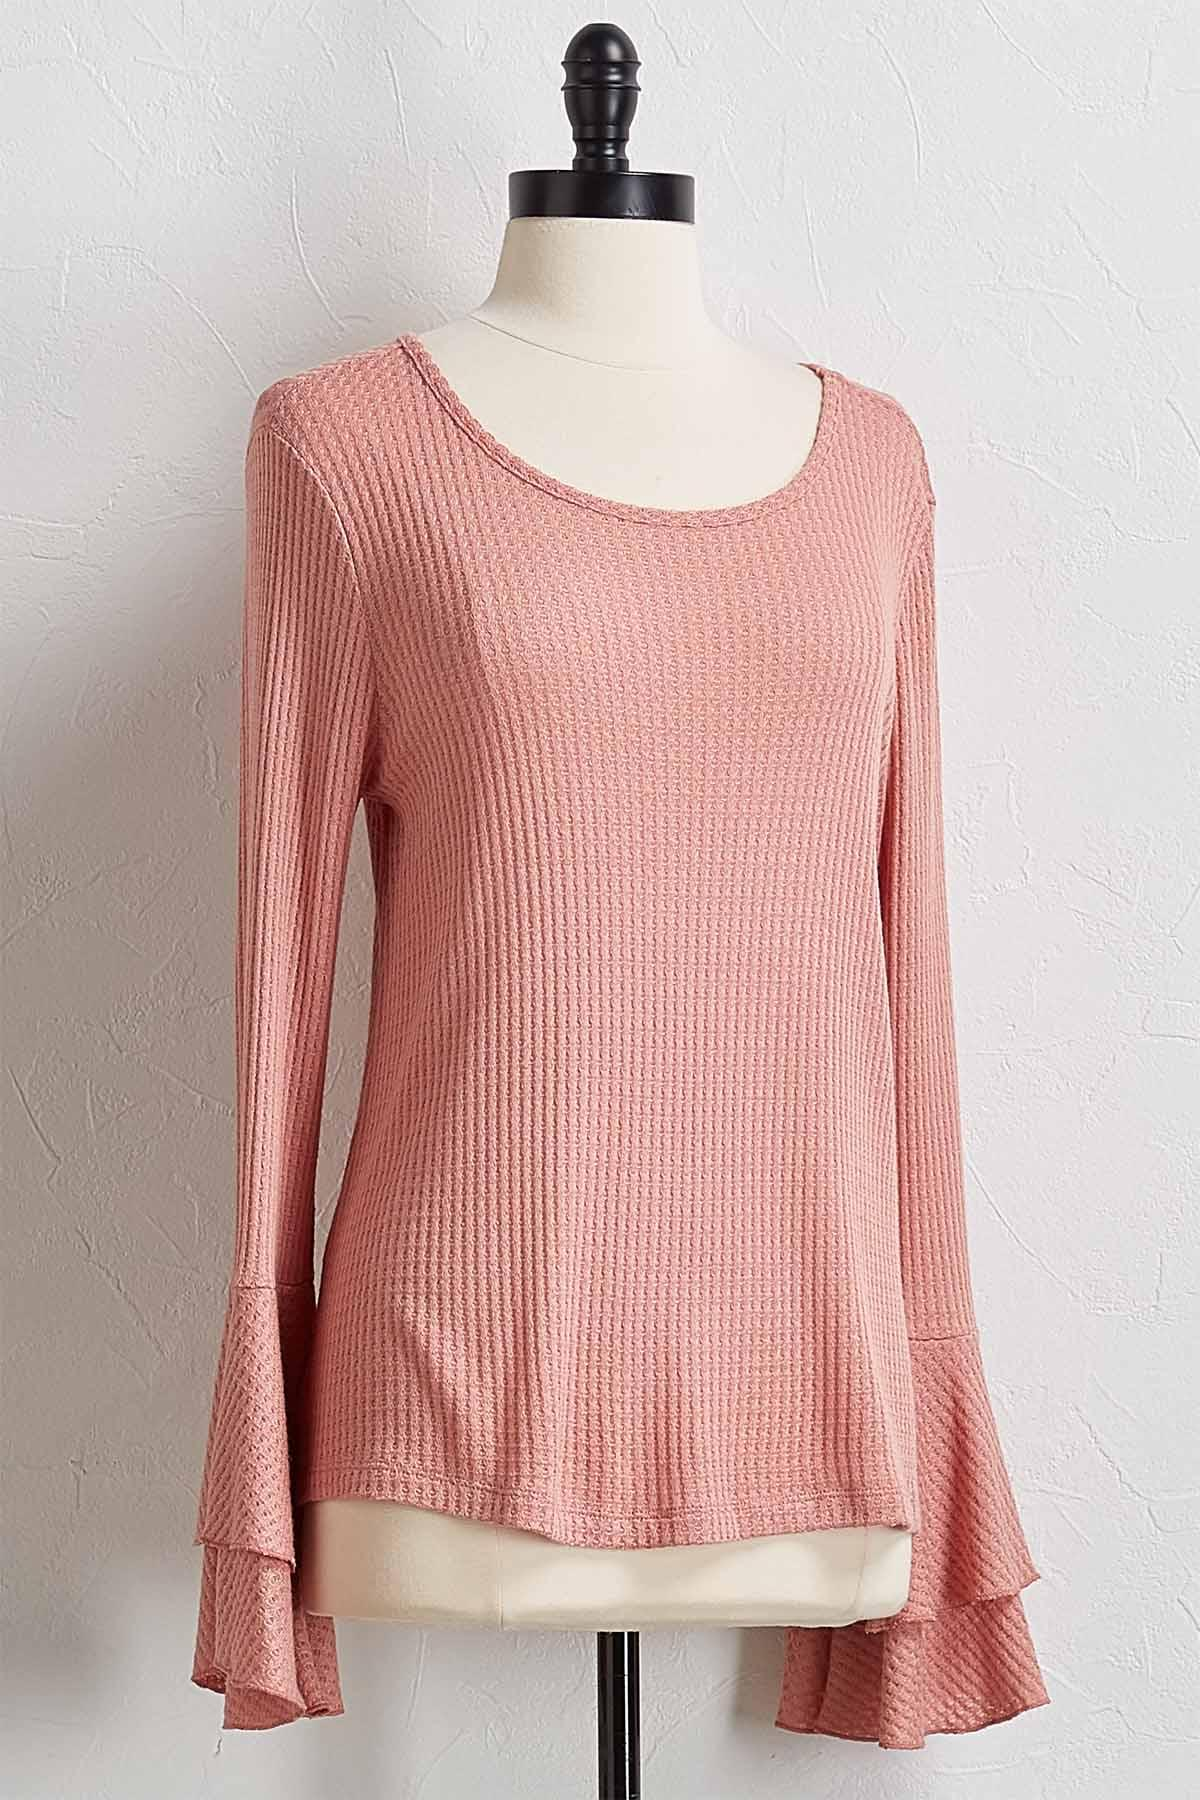 Textured Ruffled Sleeve Top